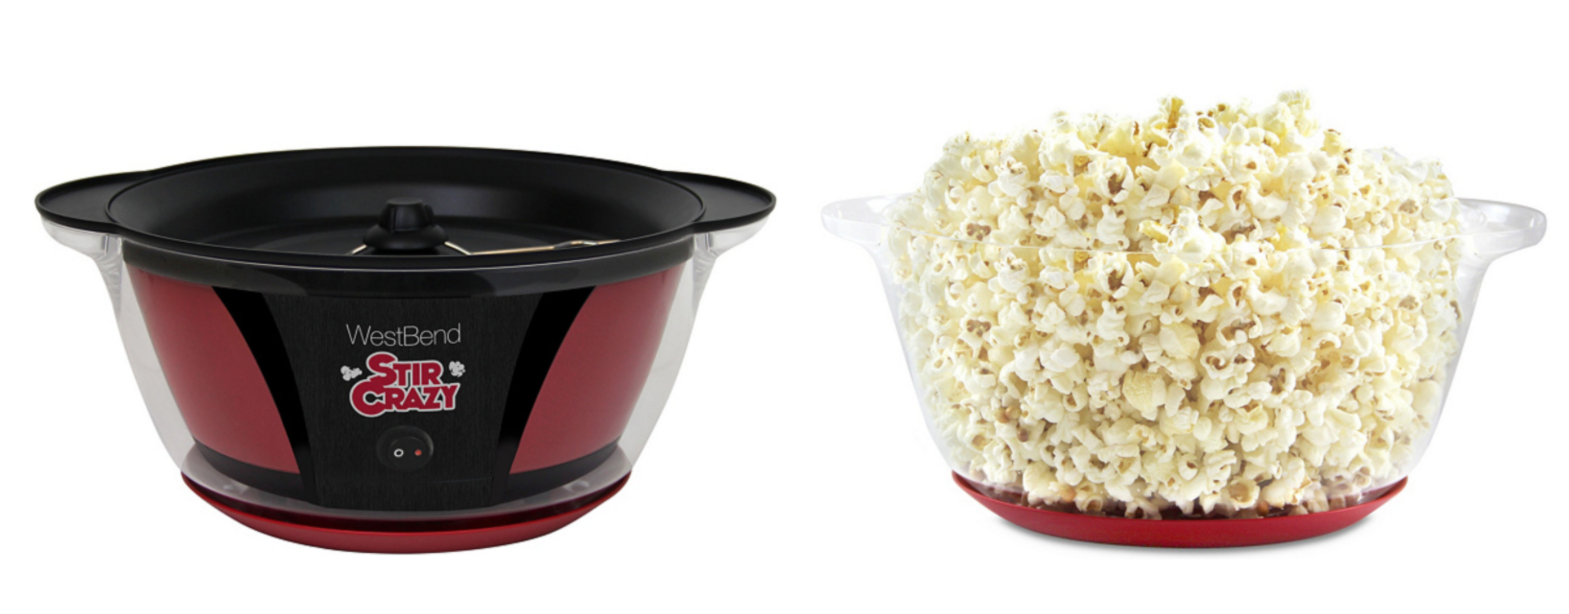 A six-quart popcorn popper that has a butter-melting system AND turns into a serving bowl.